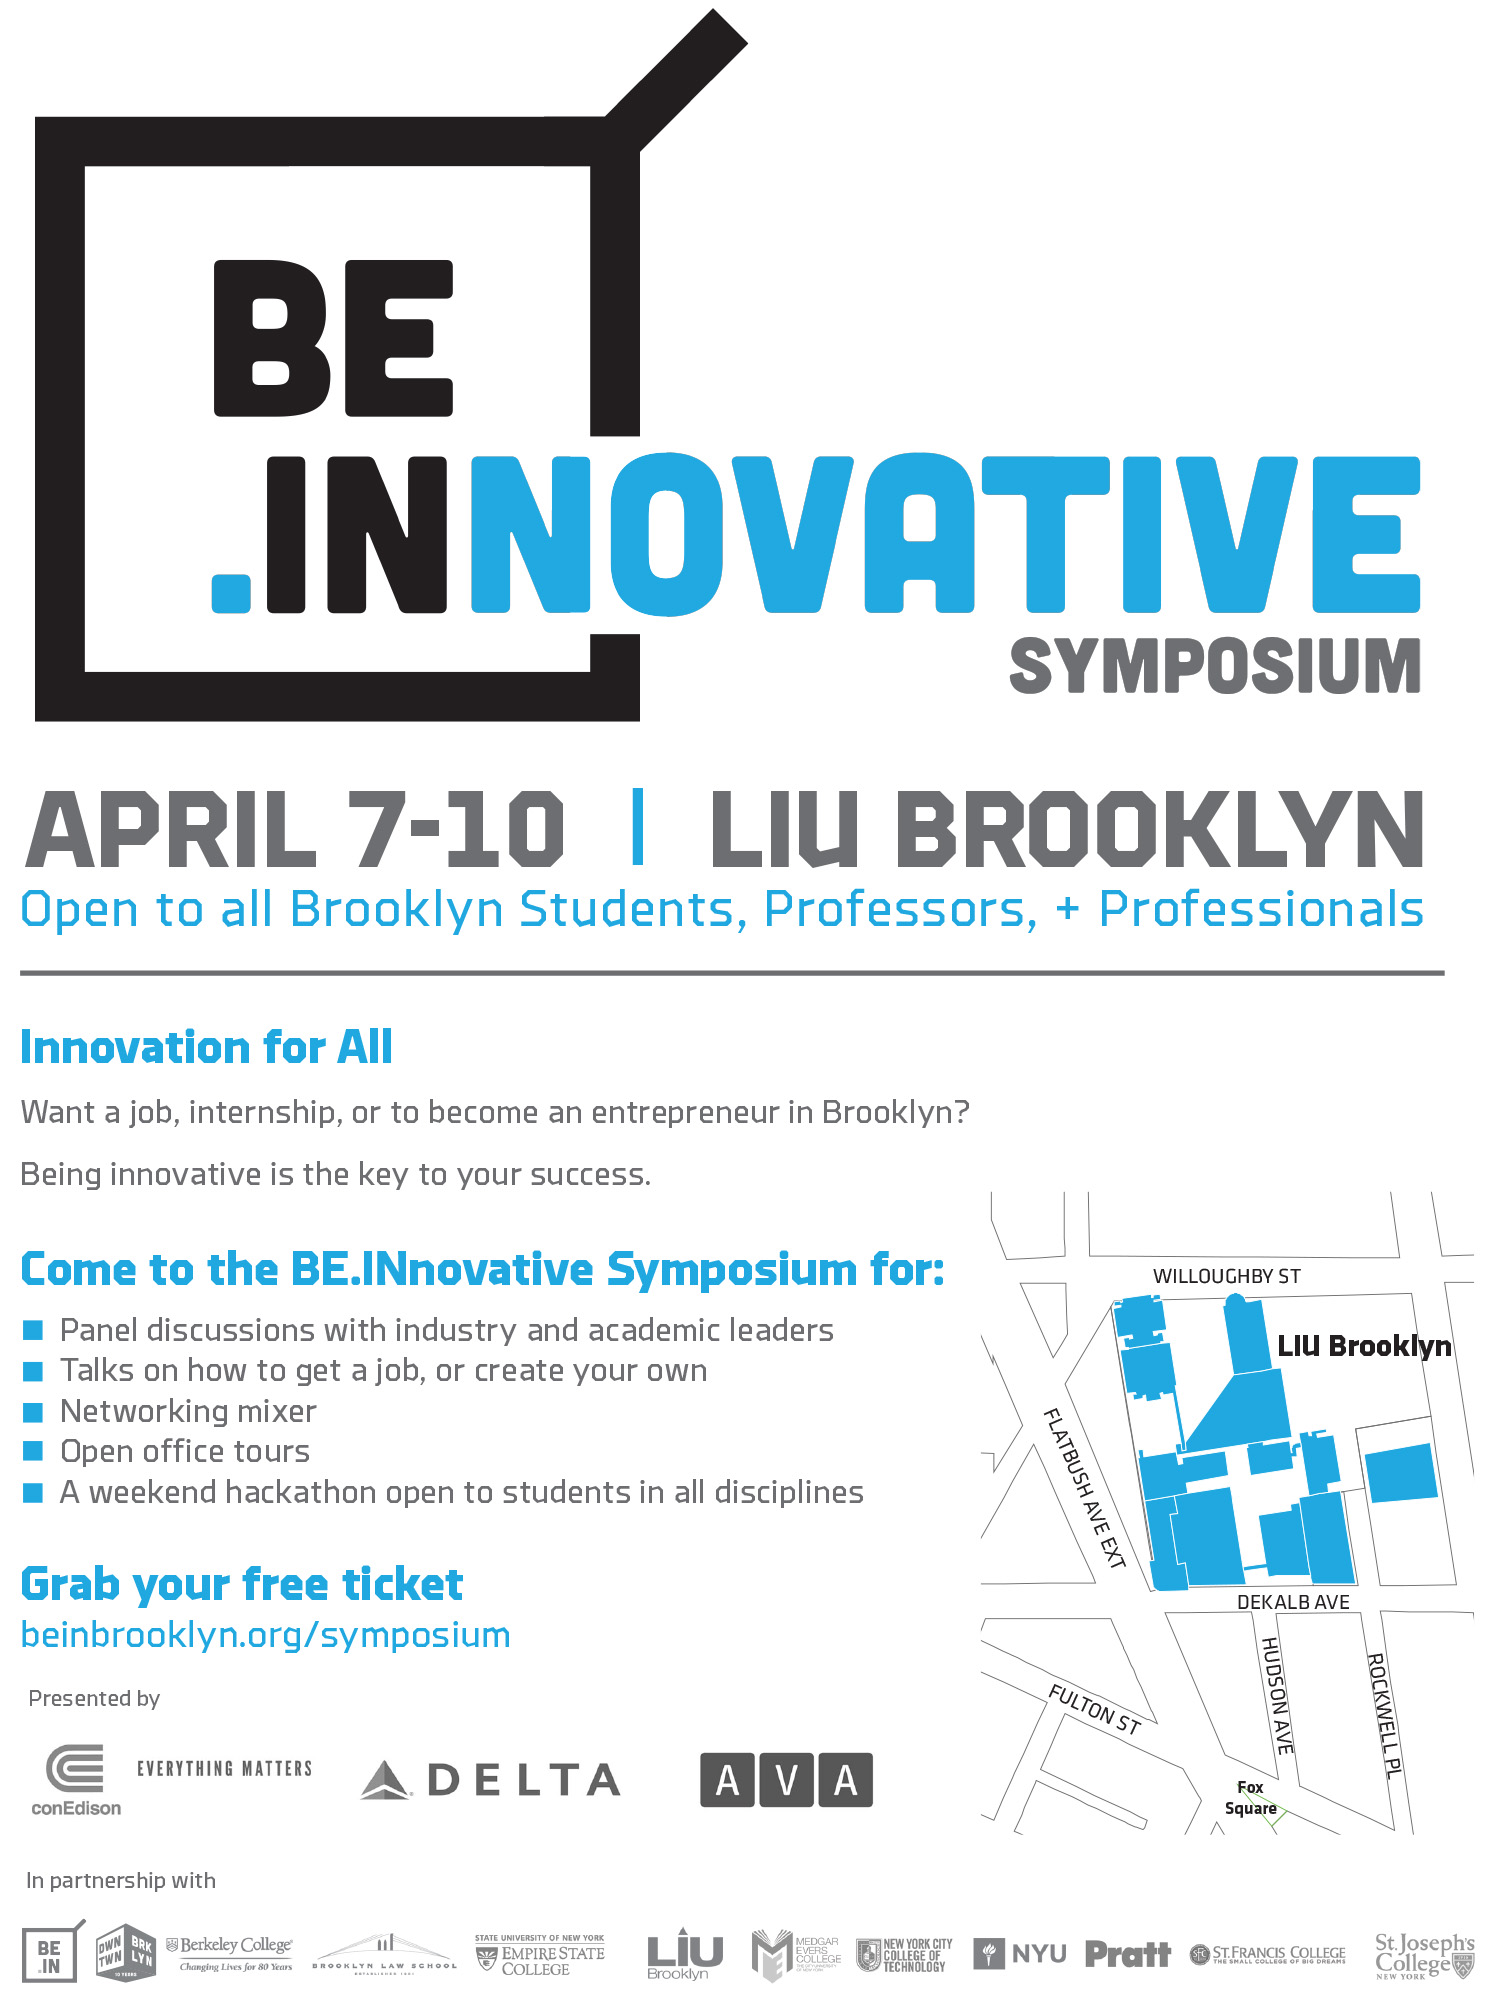 BEINNOVATIVE Symposium Flyer - with school logos